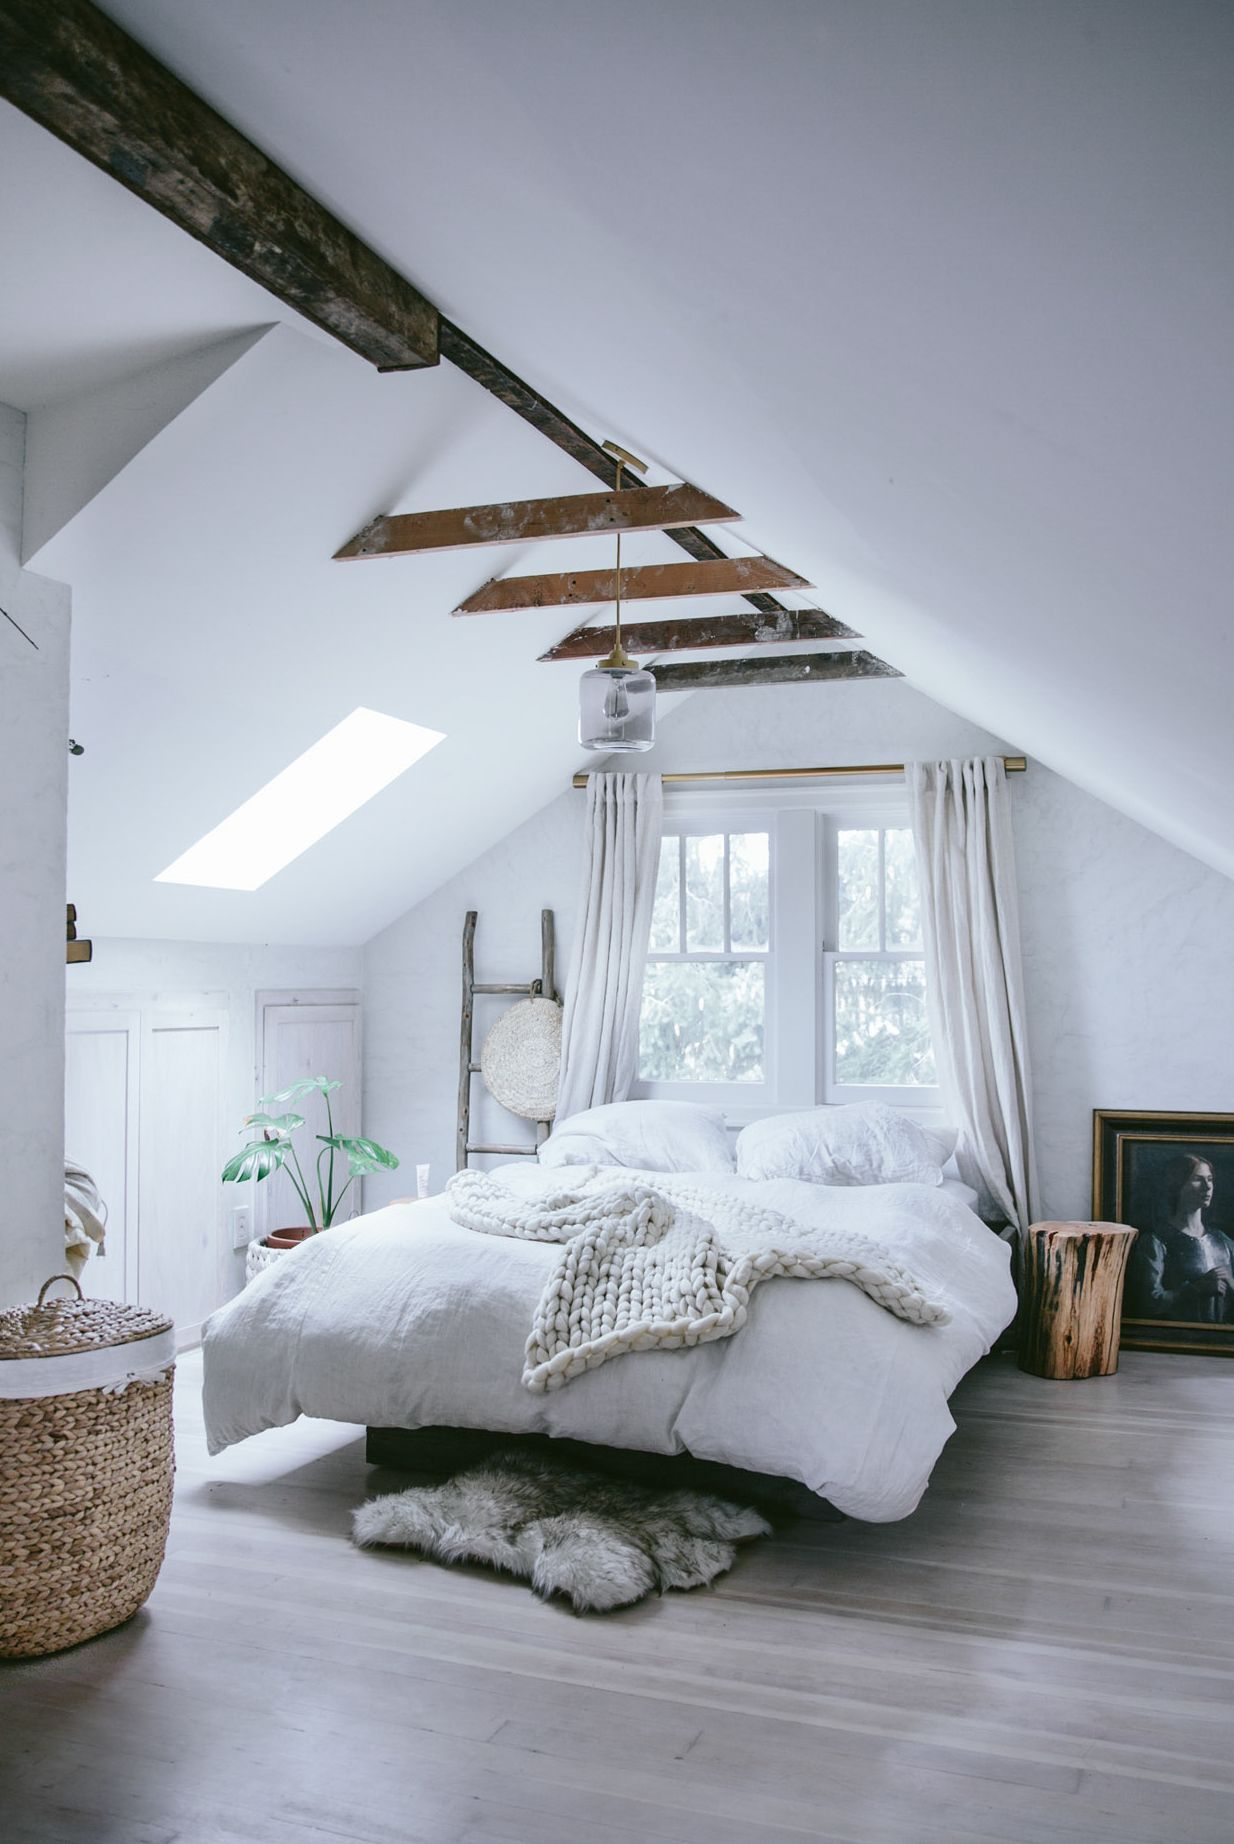 Loft bedroom design ideas  Easy Things That You Could Do To Improve Your Homeus Interior